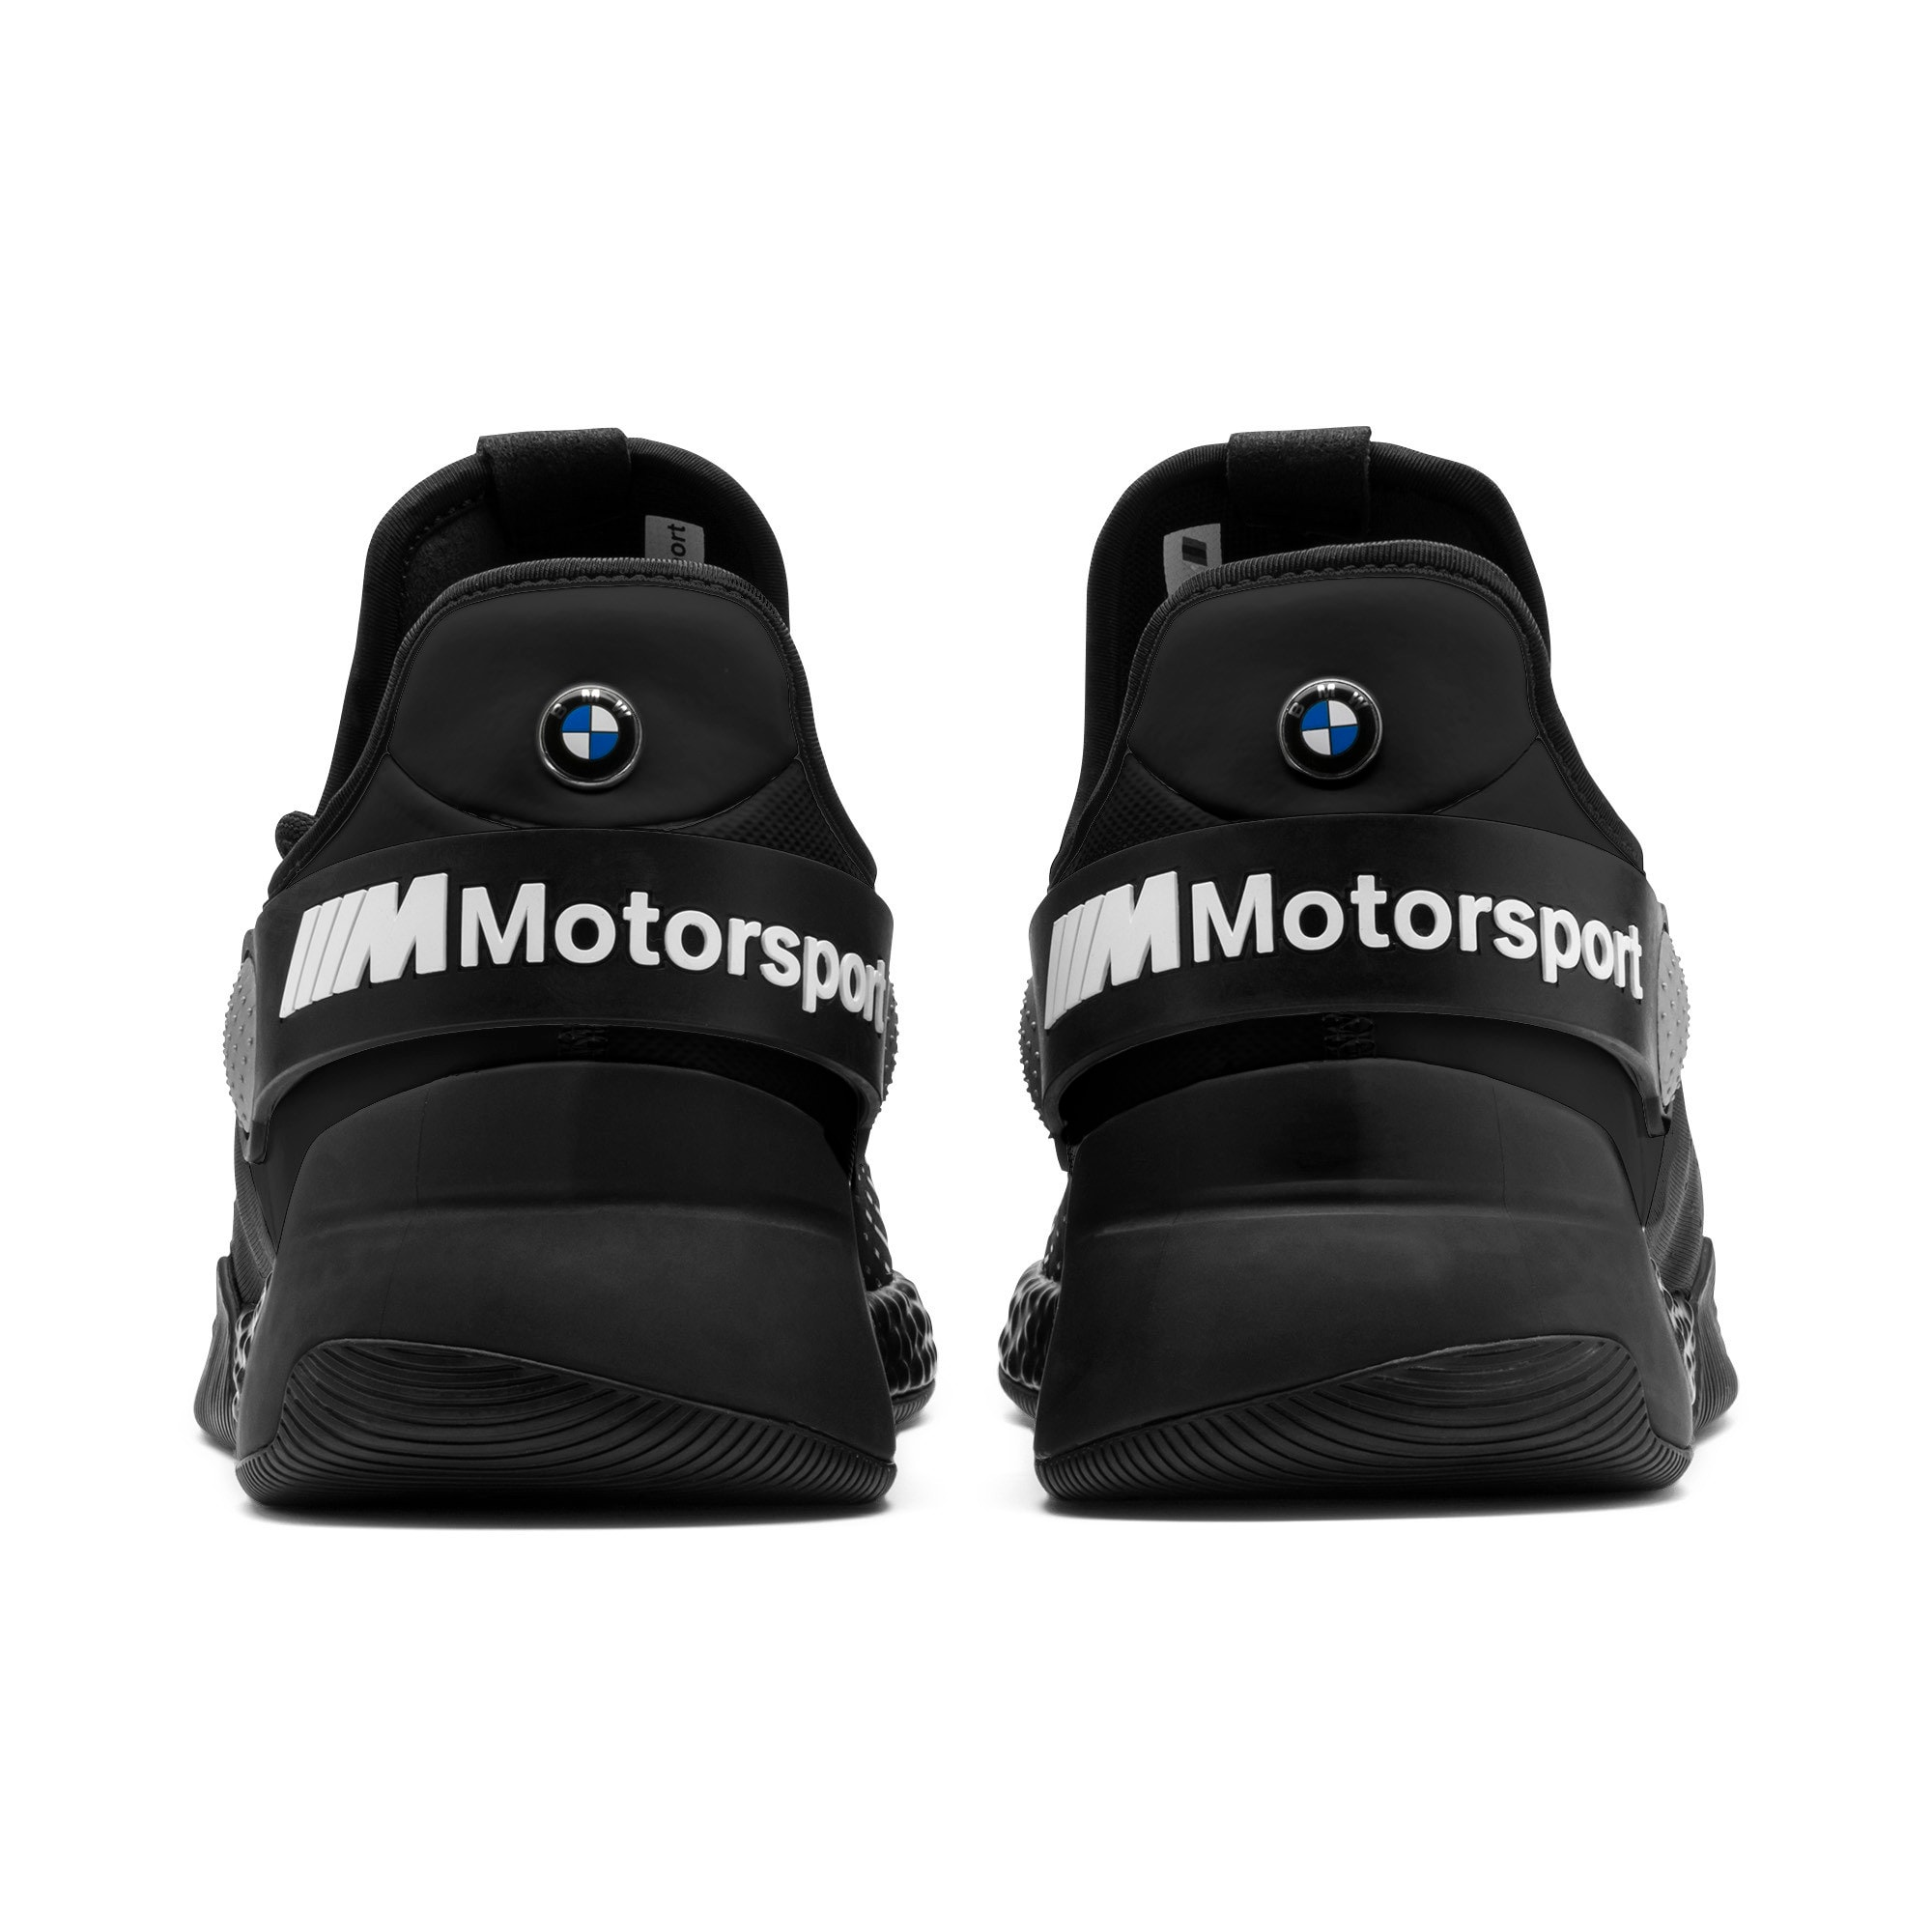 Thumbnail 4 of BMW M Motorsport HYBRID Men's Running Shoes, Black-Black-White, medium